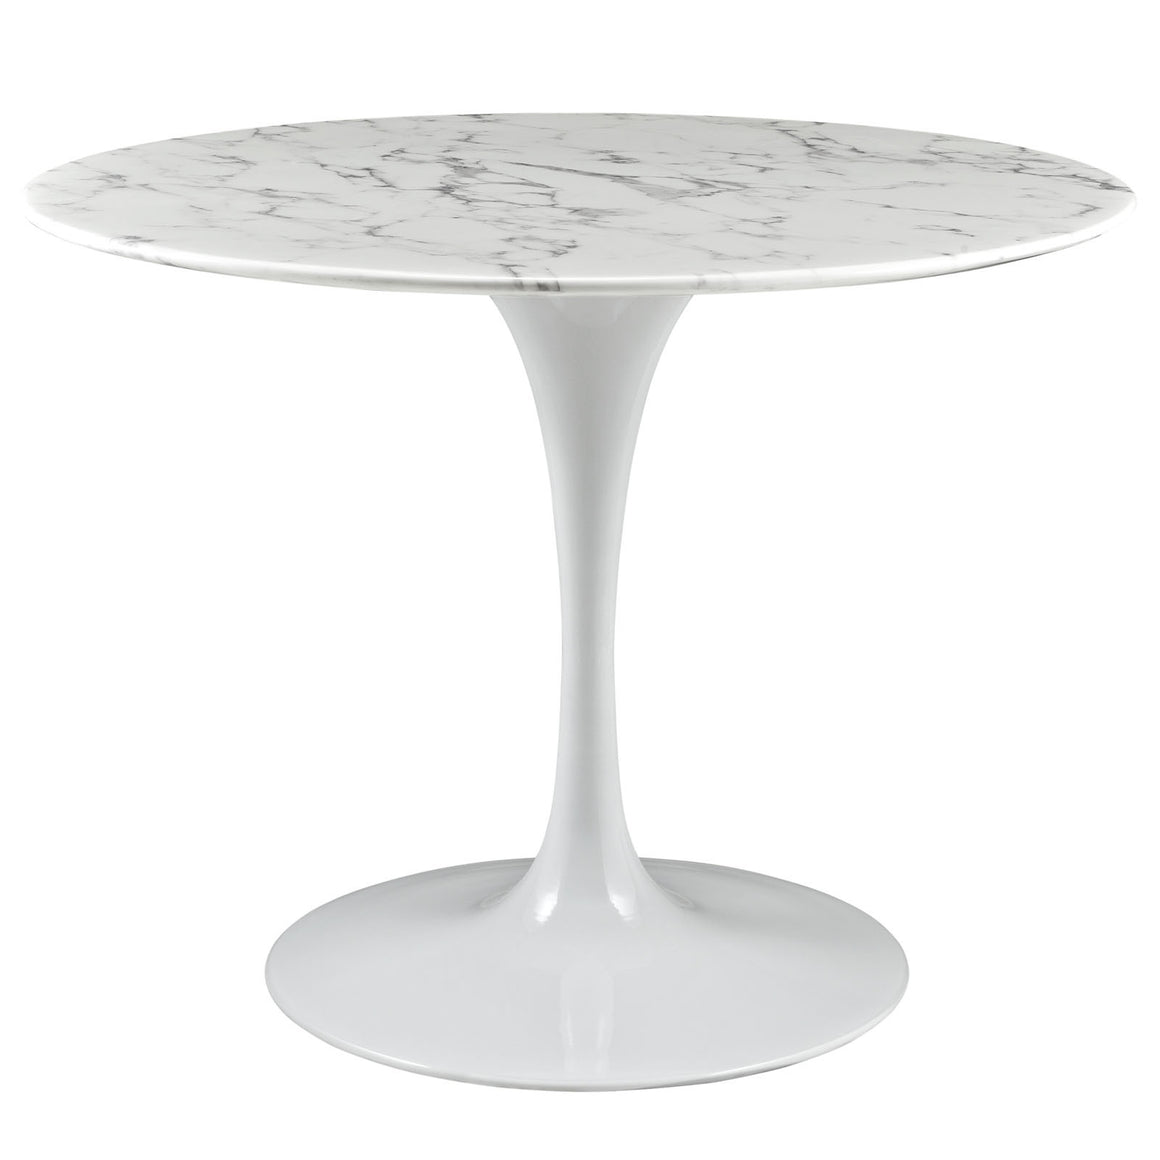 "Lippa 40"" Round Artificial Marble Top Dining Table - taylor ray decor"